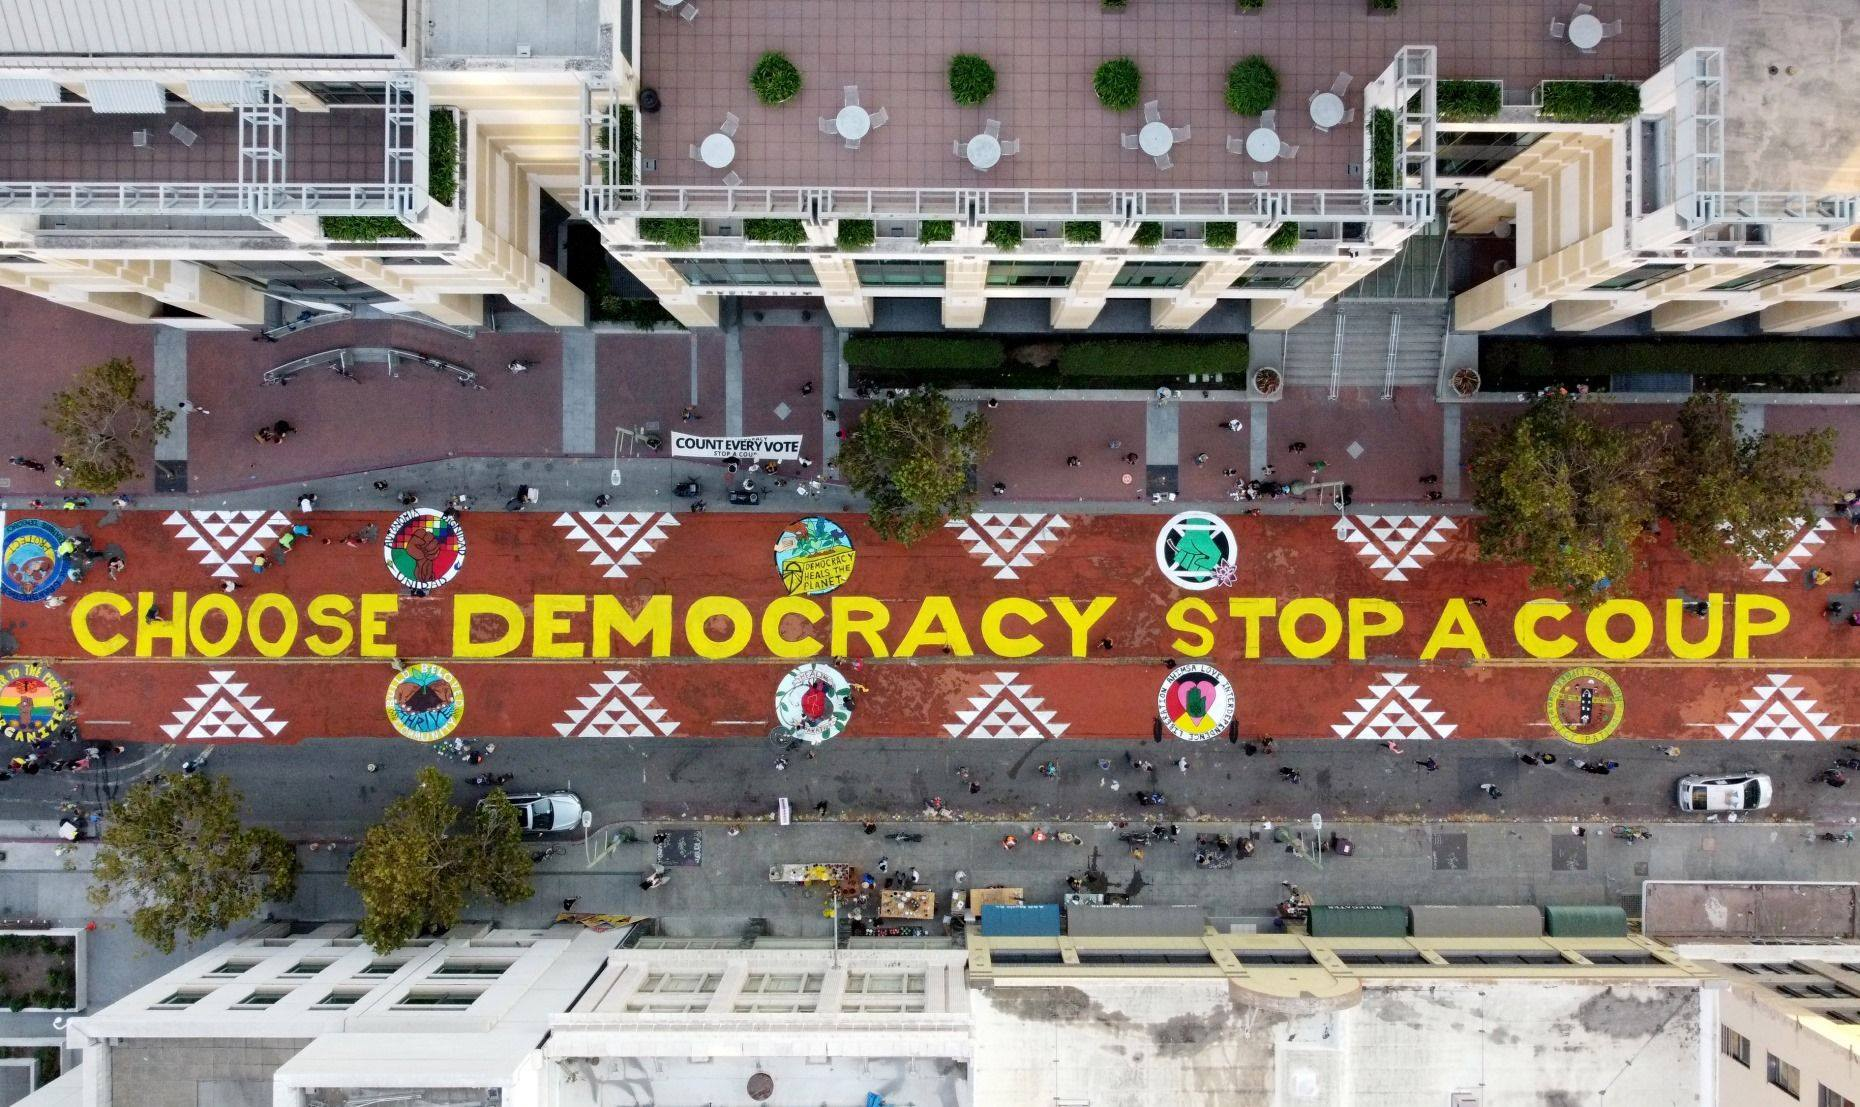 https://wagingnonviolence.org/wp-content/uploads/2020/12/Choose-Democracy-street-mural.jpg